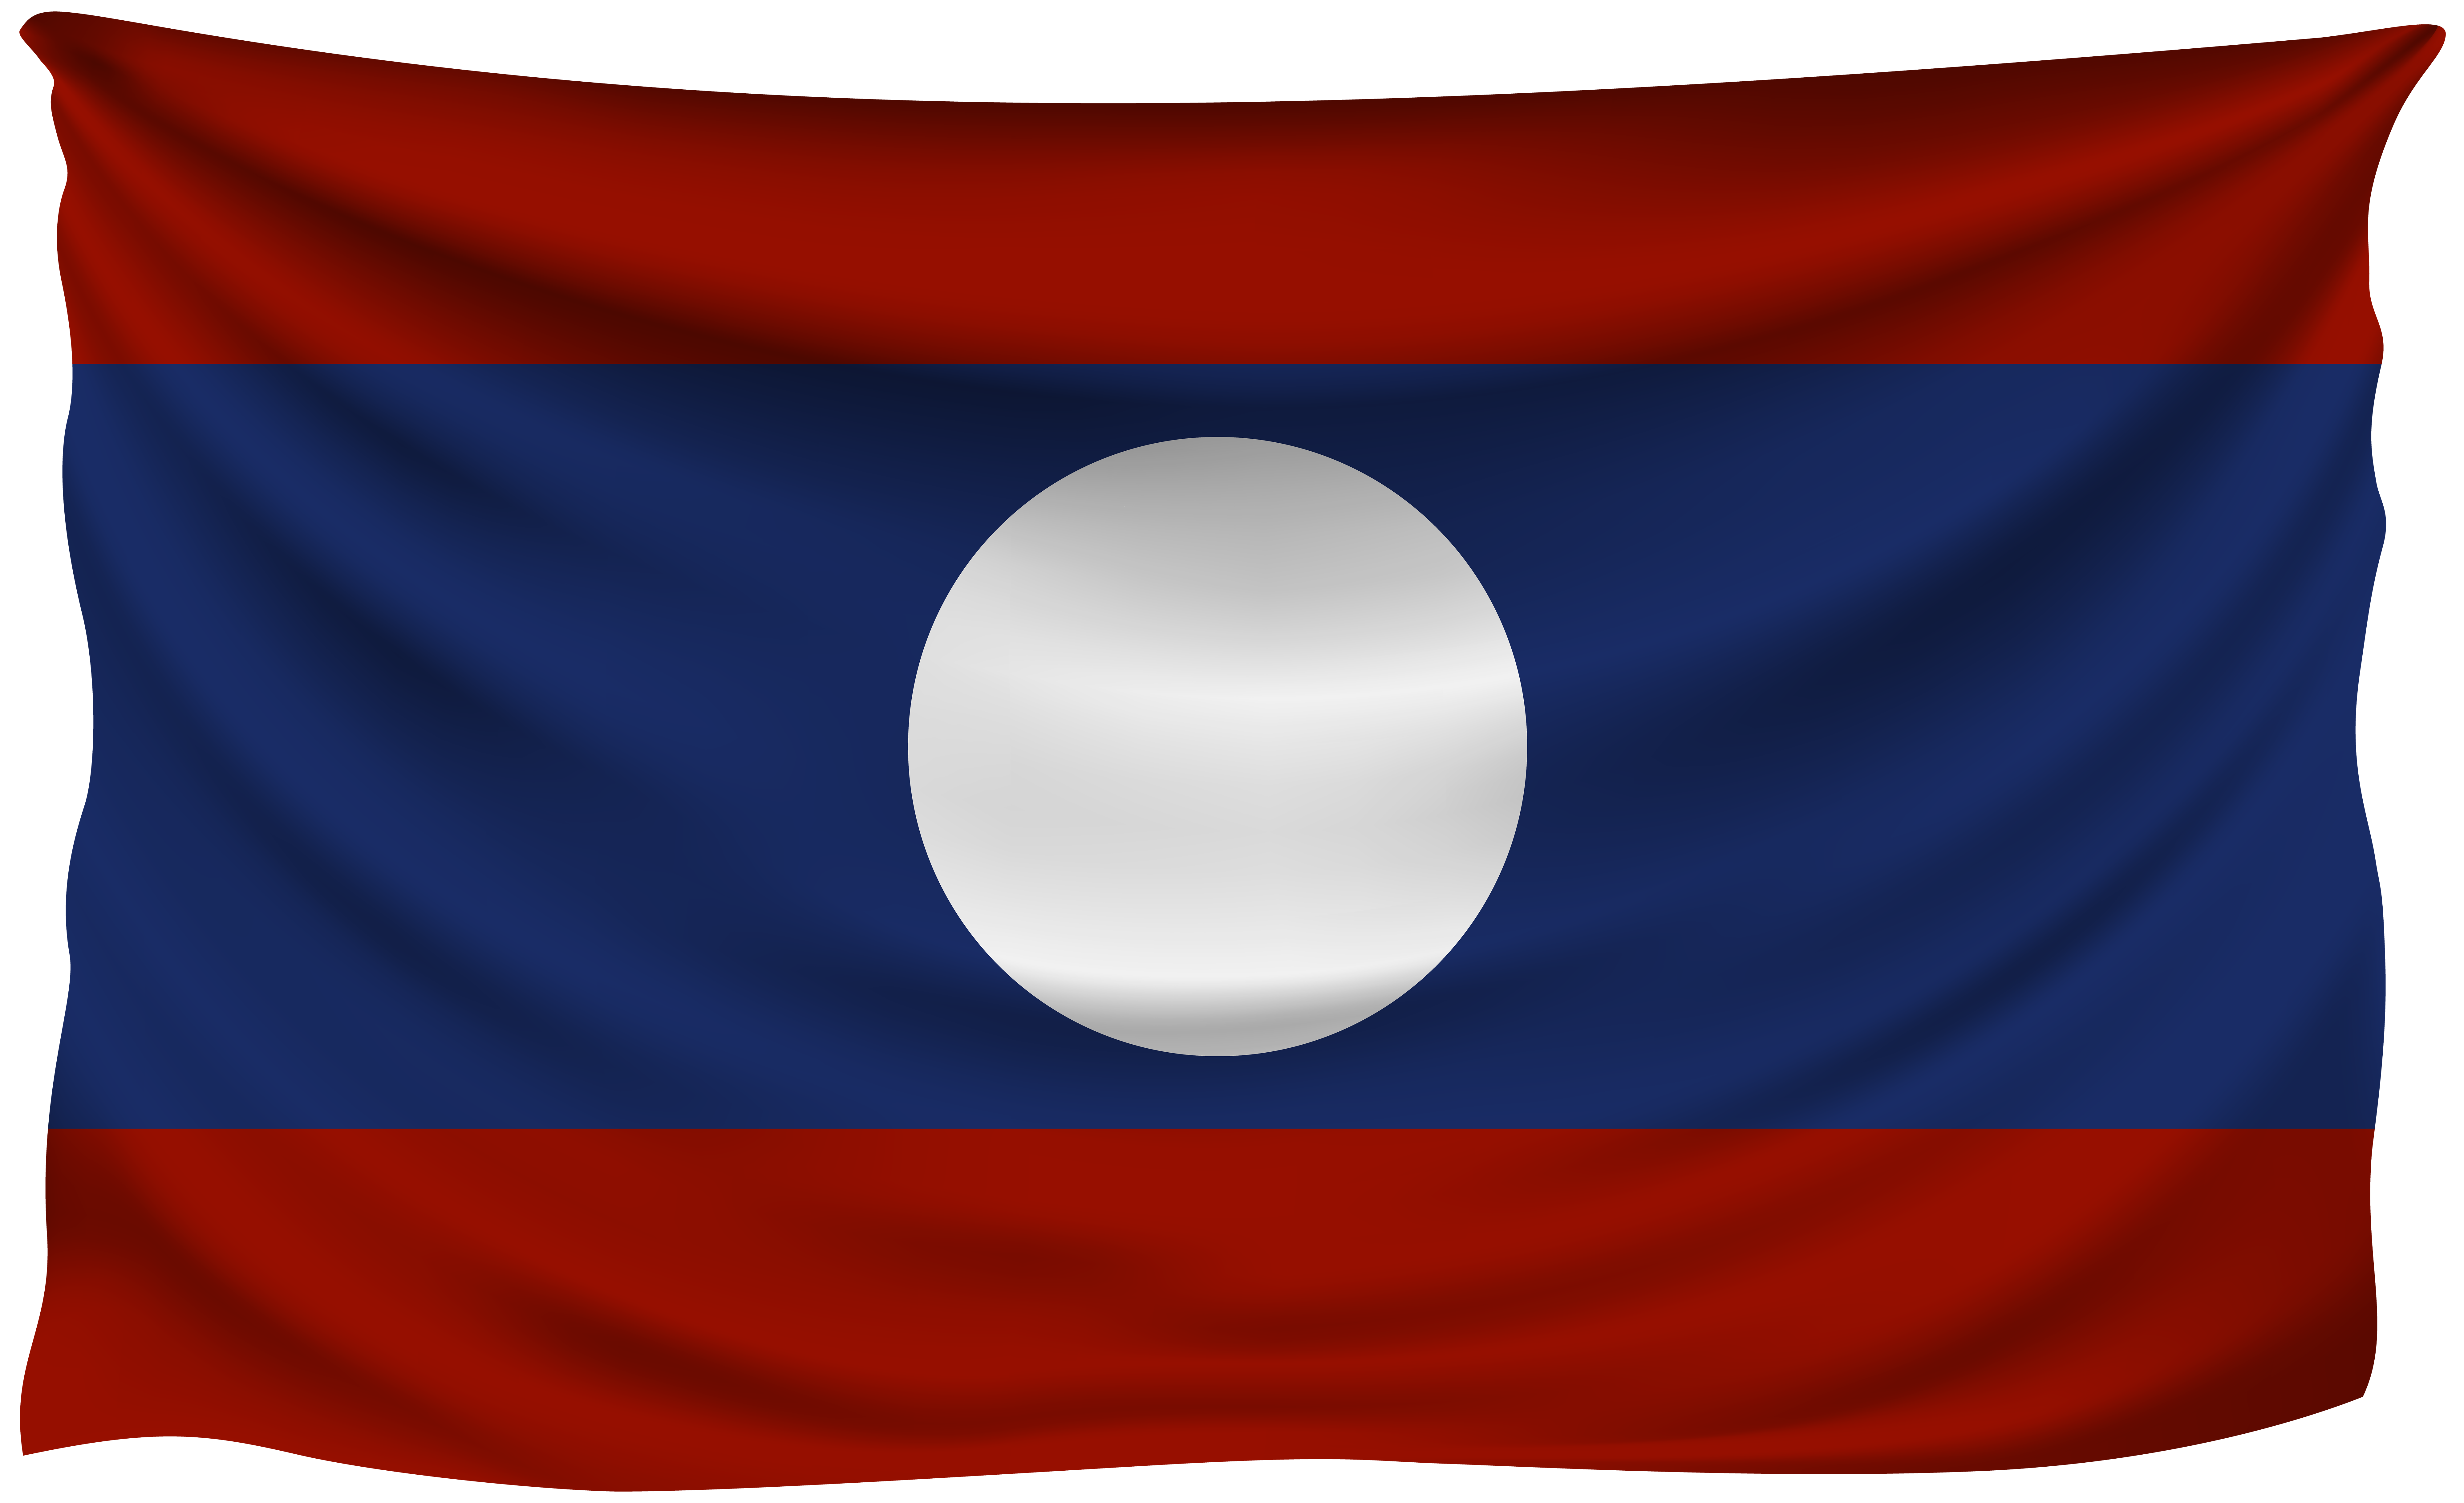 Laos flag png. Wrinkled gallery yopriceville high